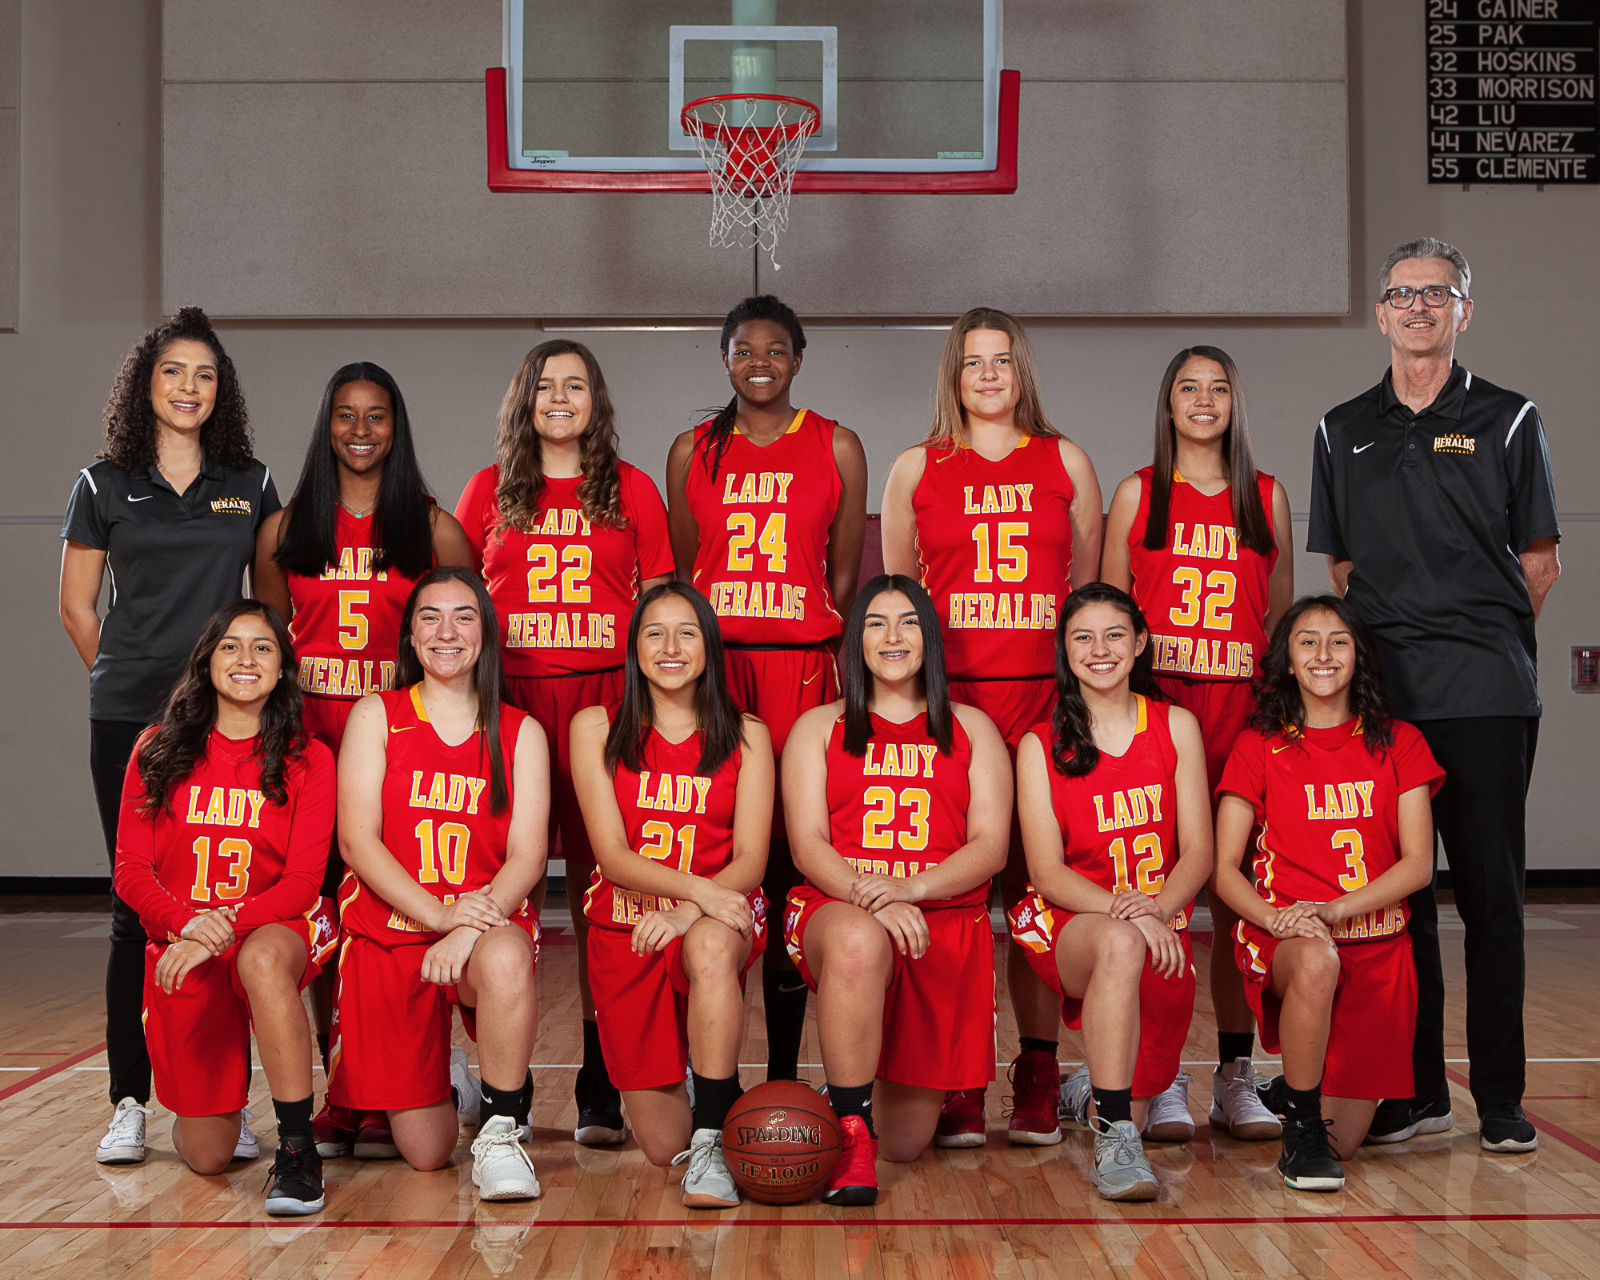 Lady Heralds advance to CIF quarterfinals with 41-32 victory over Claremont Wolfpack